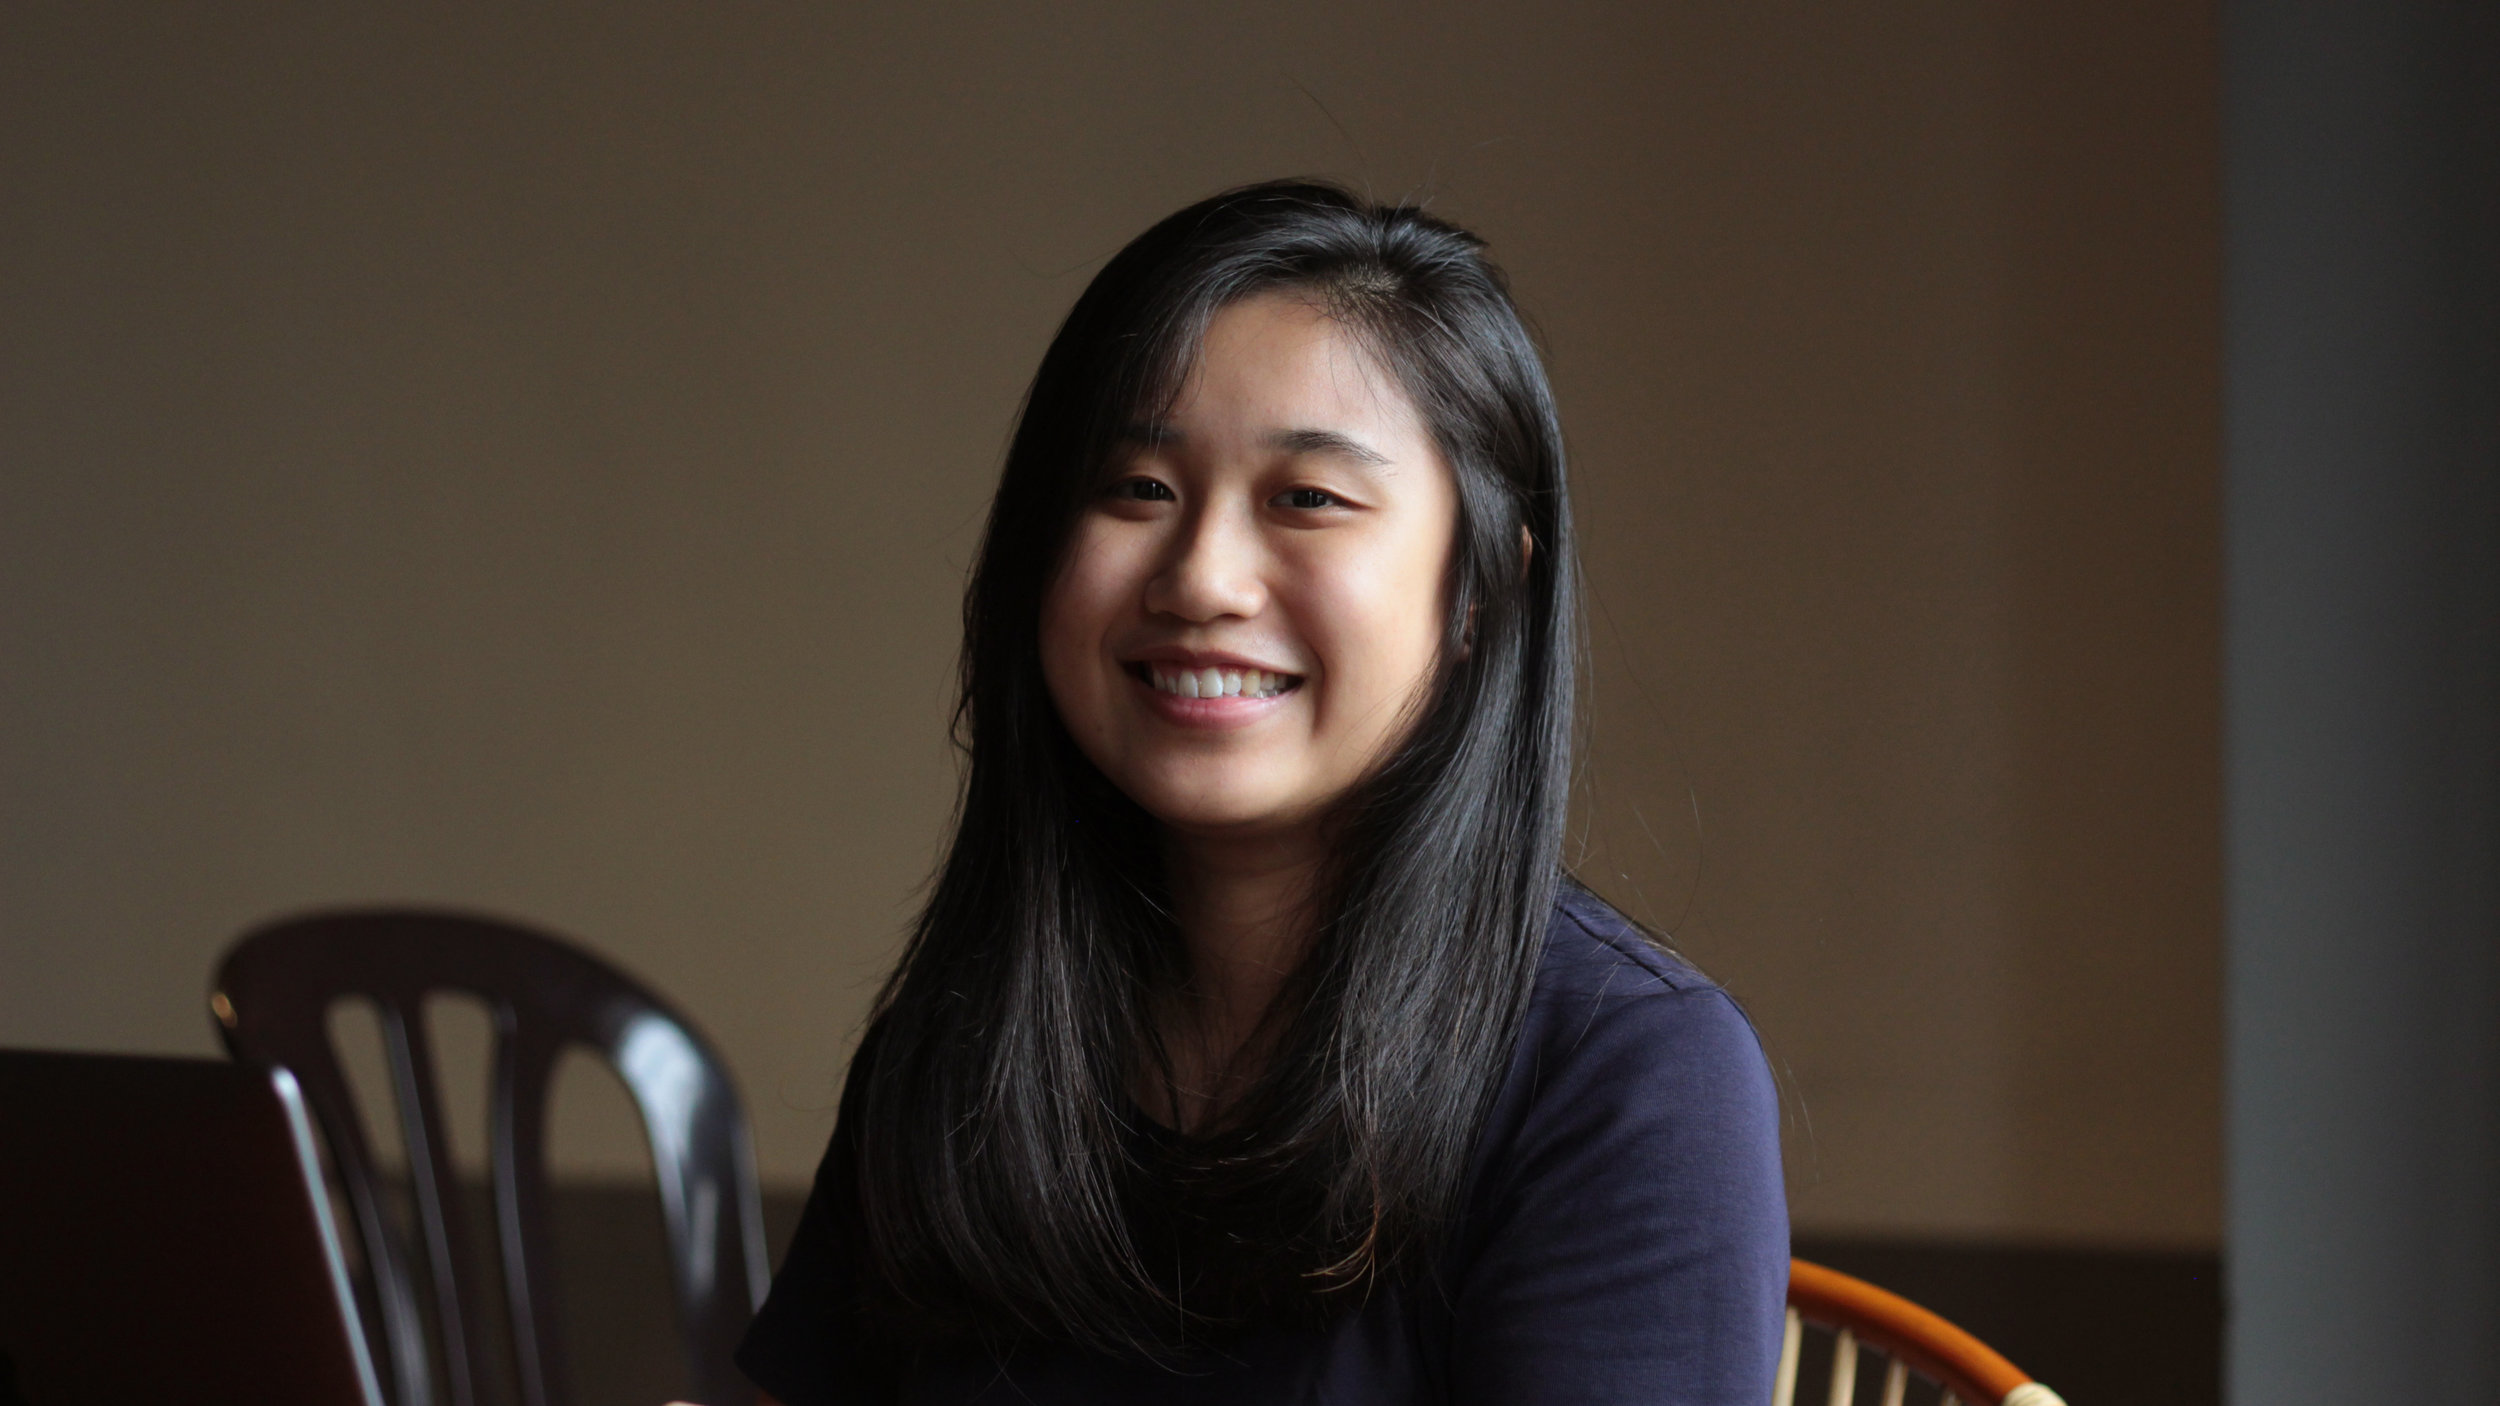 - ROU NING TEHwas born in Penang in 1993. Rou started to work the industry in 2016 as freelance videographer and photographer. From 2017 to 2018, her experiences extended from being the prop master and pre-production crew in film sets to the 2nd Assistant Director for the feature film Polis Evo 2. Rou's works Hin won the Best Video Award in Kaki Lima Short Film Competition 2016 and Get Chu Ki won the Funniest Award in Yeo's I Love Malaysia Video Competition. Rou is known for talking to the computer screen. So if you get your room number mixed up, you know where to look for her.